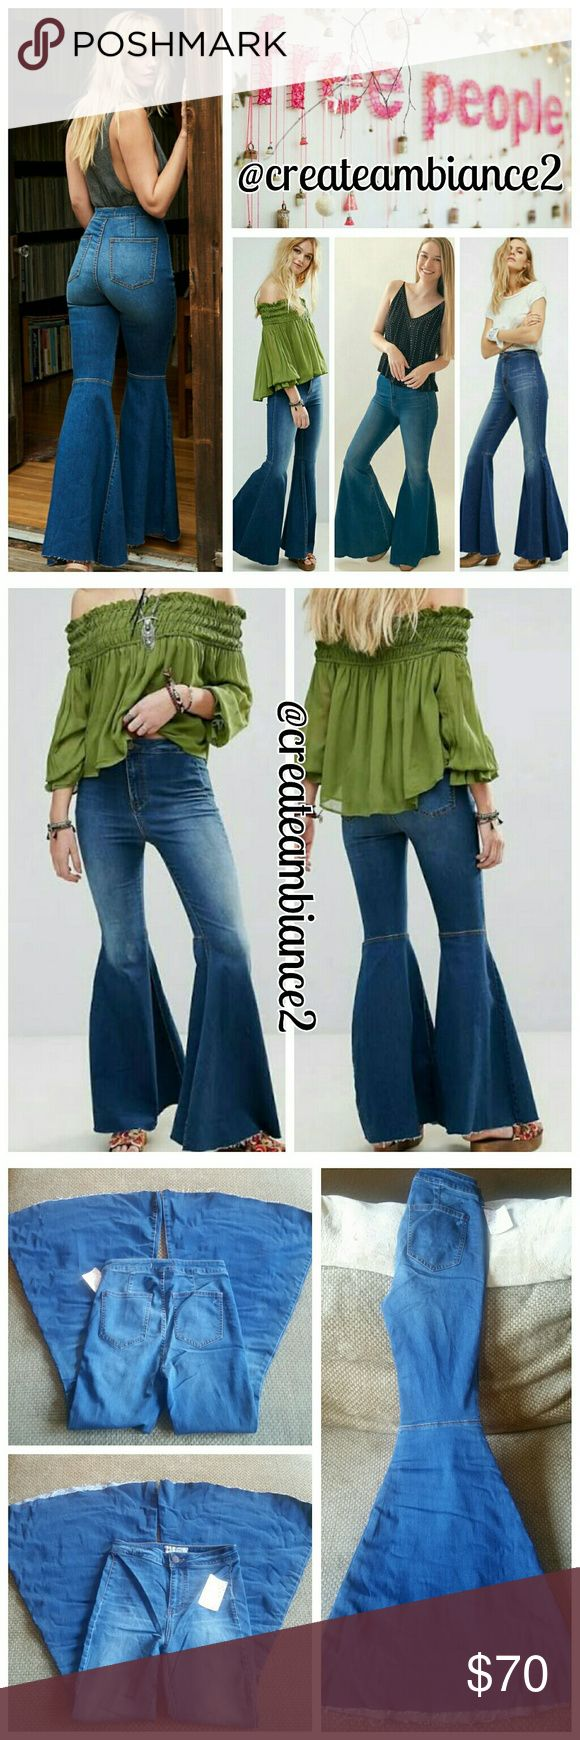 Free People Super Flare Jeans Free People Super Flare Jeans in under the sea. Here's to the perfect pair of jeans!   No trade, discount with bundle! Considering all reasonable offers made via the blue offer button only! Free People Jeans Flare & Wide Leg